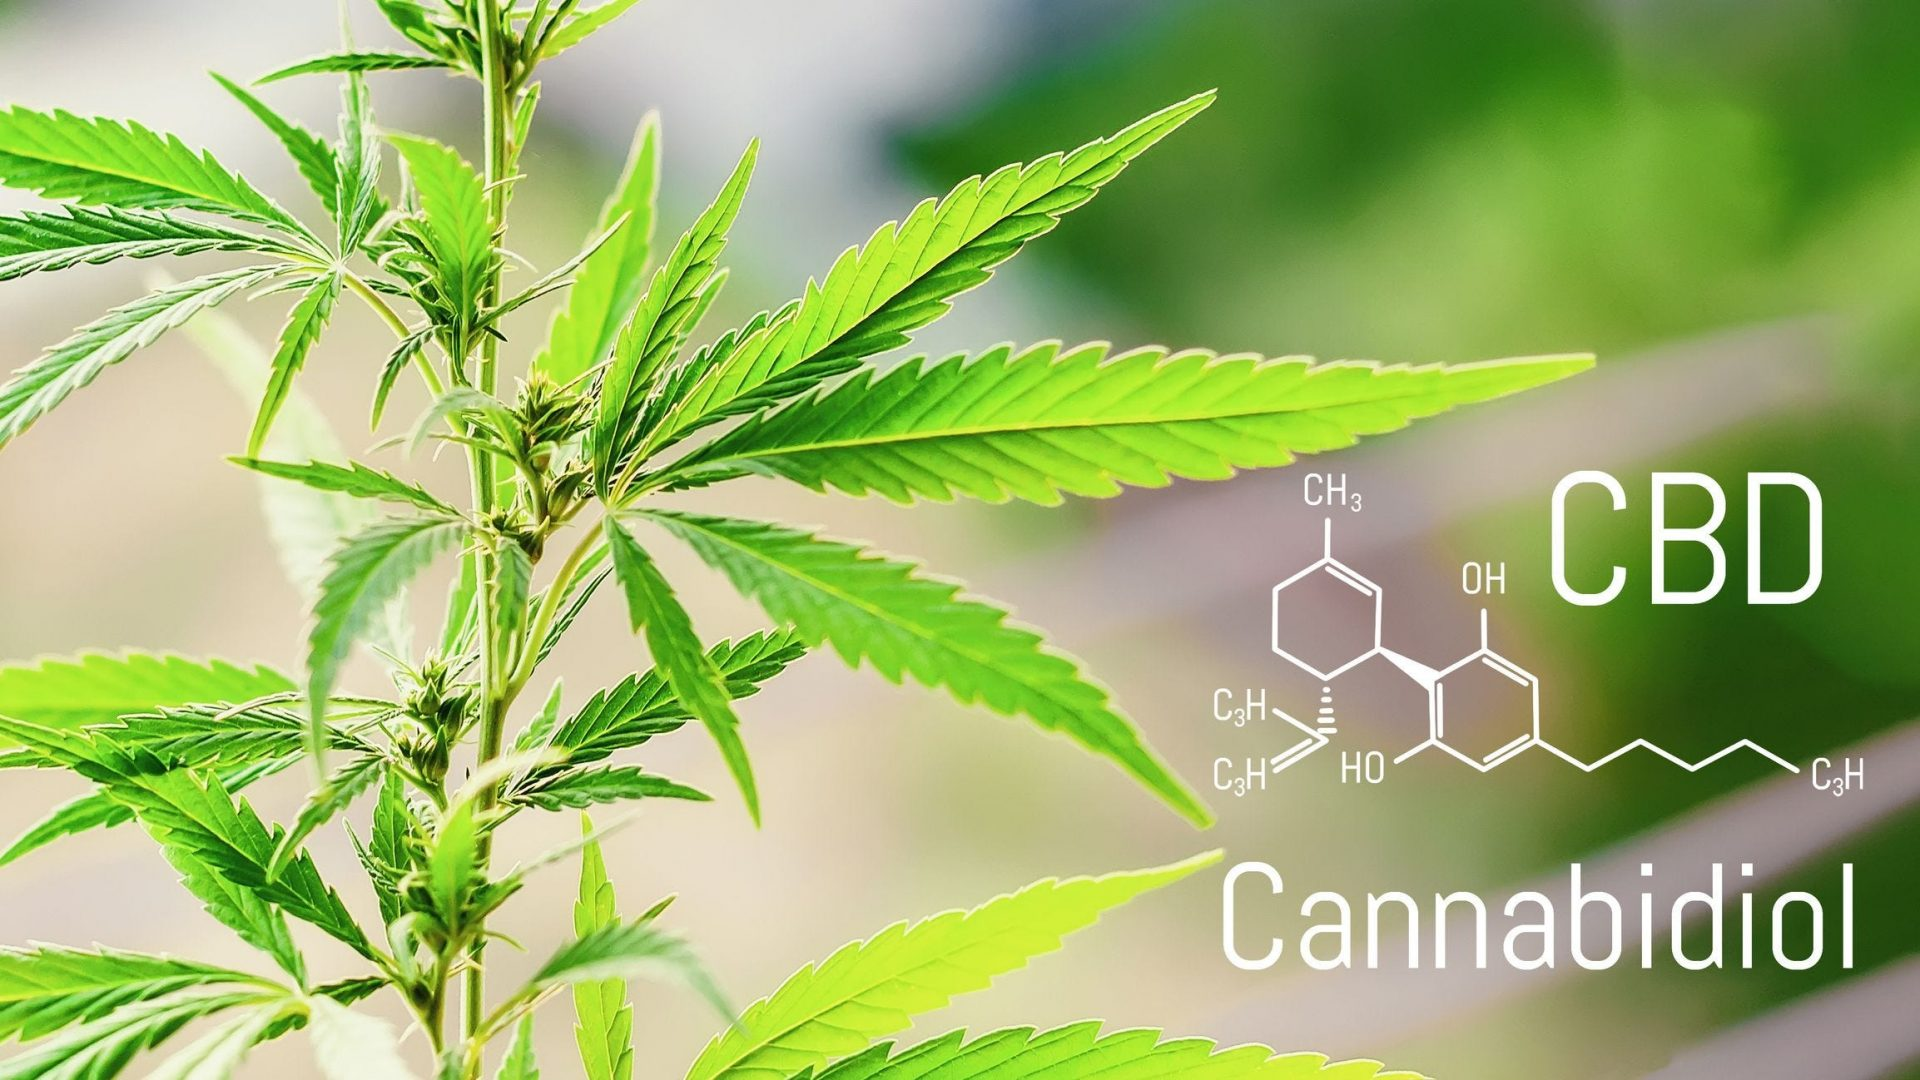 Prescribed CBD could help people quit cannabis - drugscience.org.uk